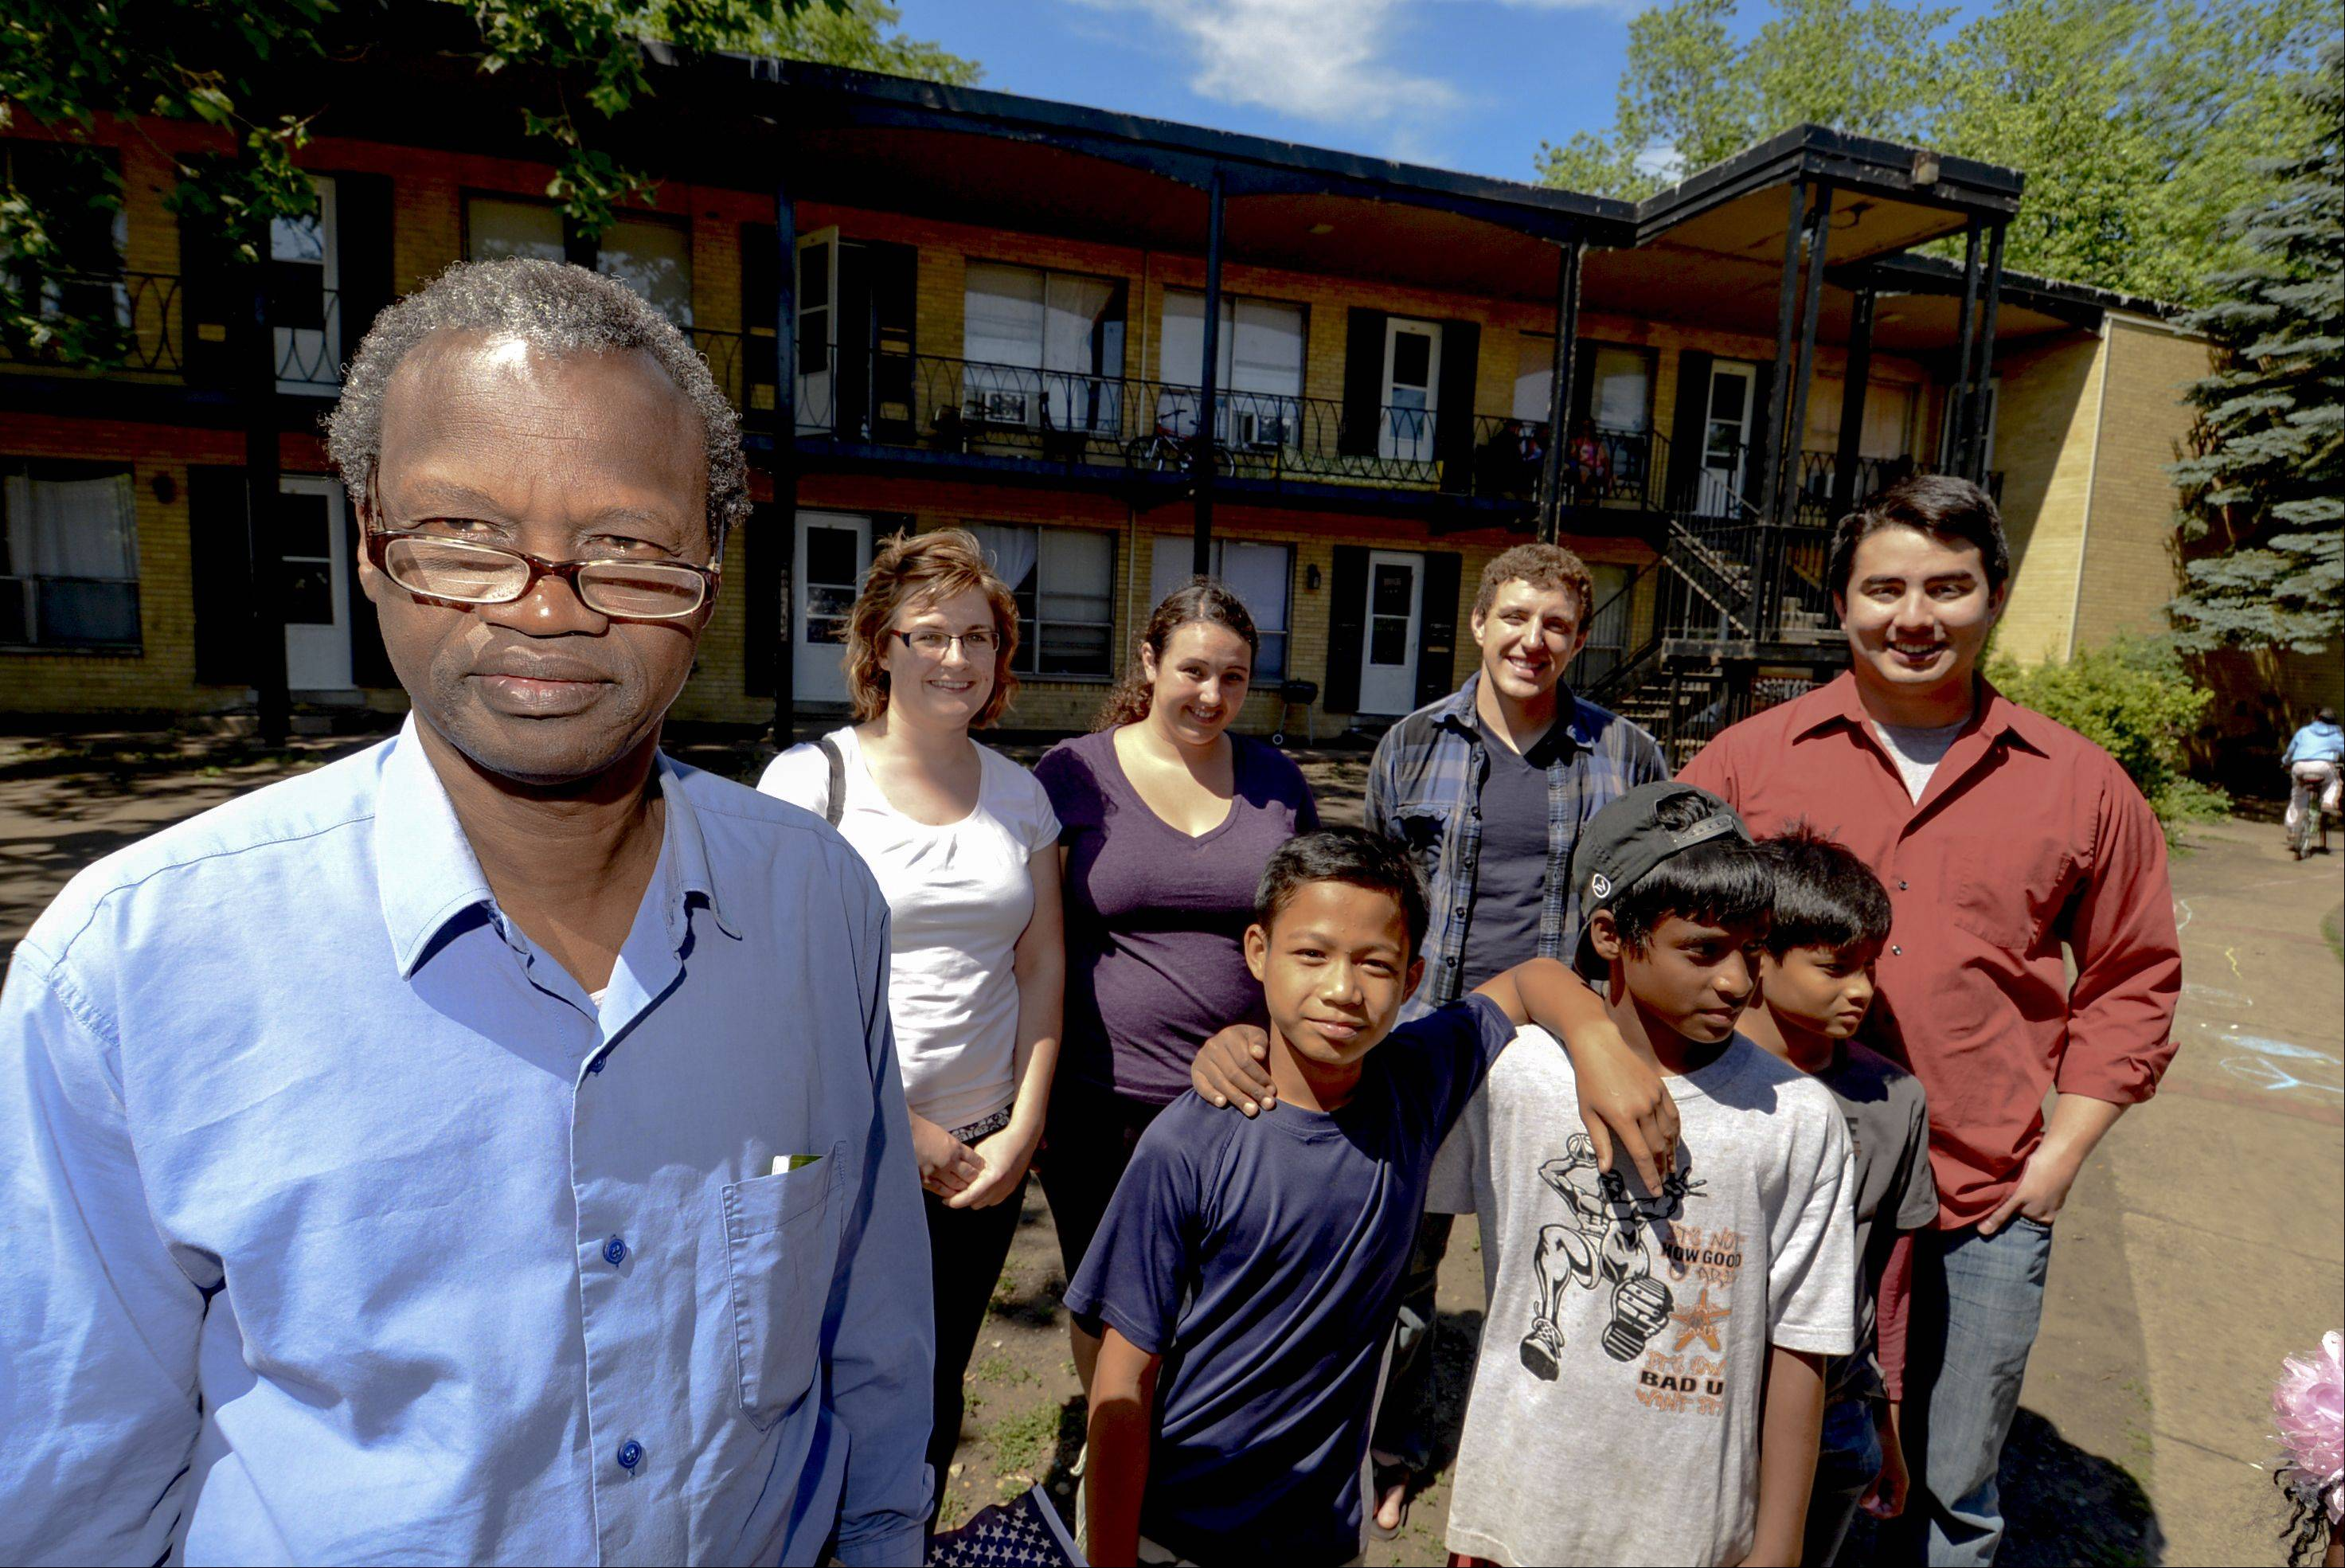 Immigrants fear being forced out of Glen Ellyn homes